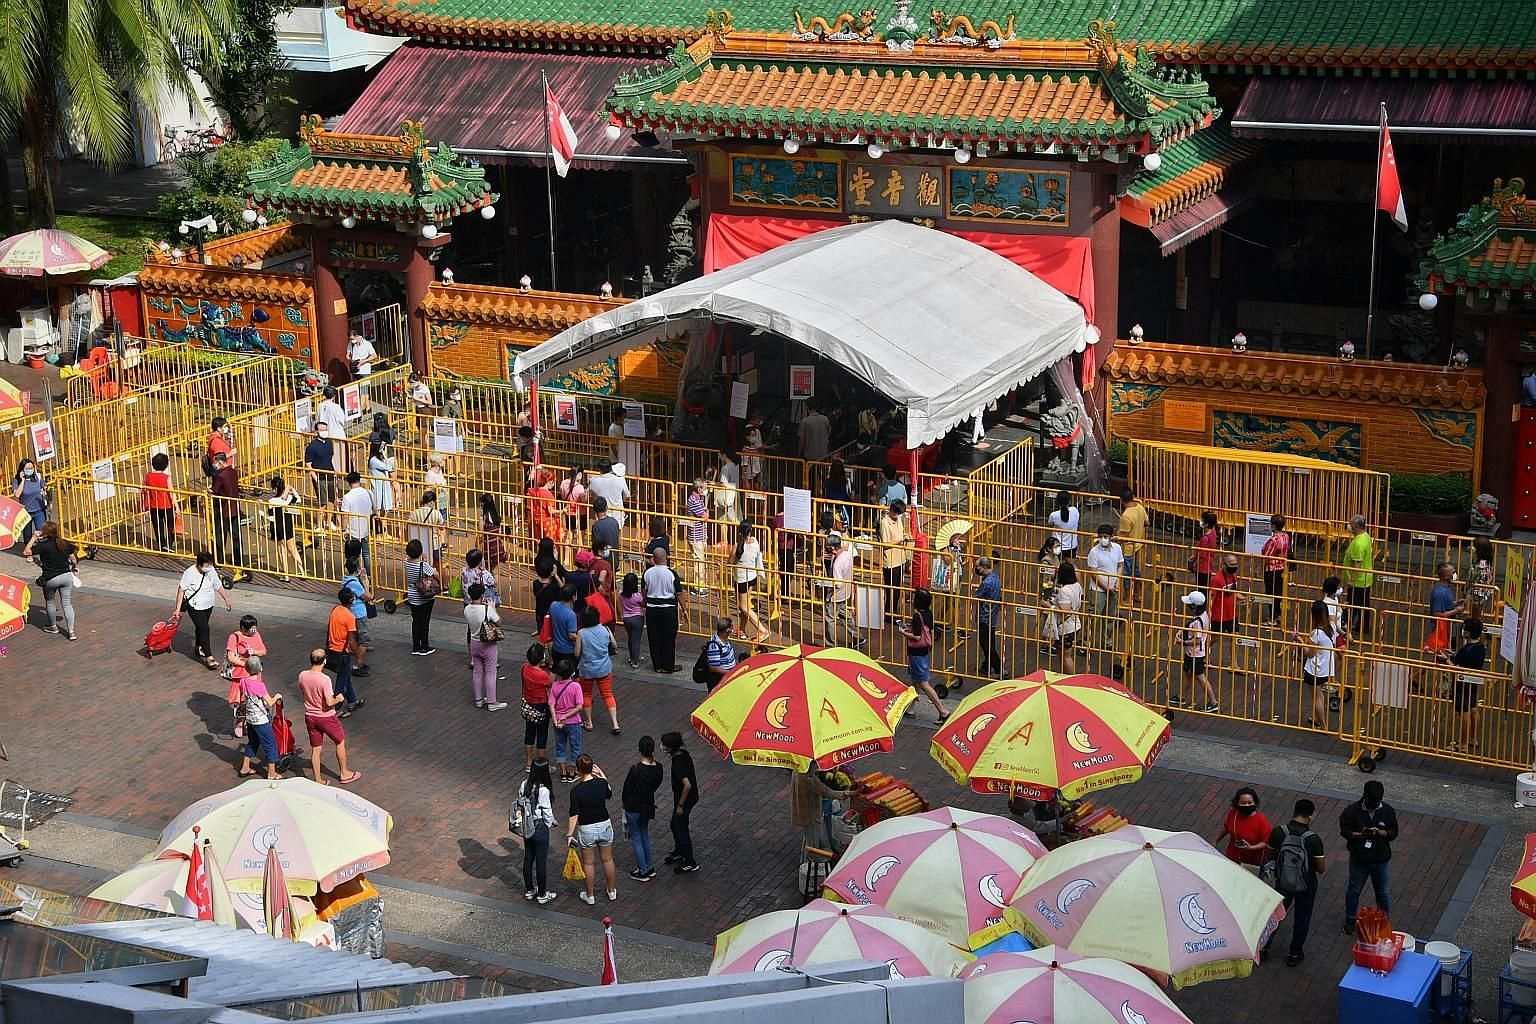 The Kwan Im Thong Hood Cho Temple reopened yesterday, four months after it closed amid the coronavirus pandemic. Devotees were seen observing safe distancing (above and far right) as they queued to enter the temple to offer their prayers. The long li